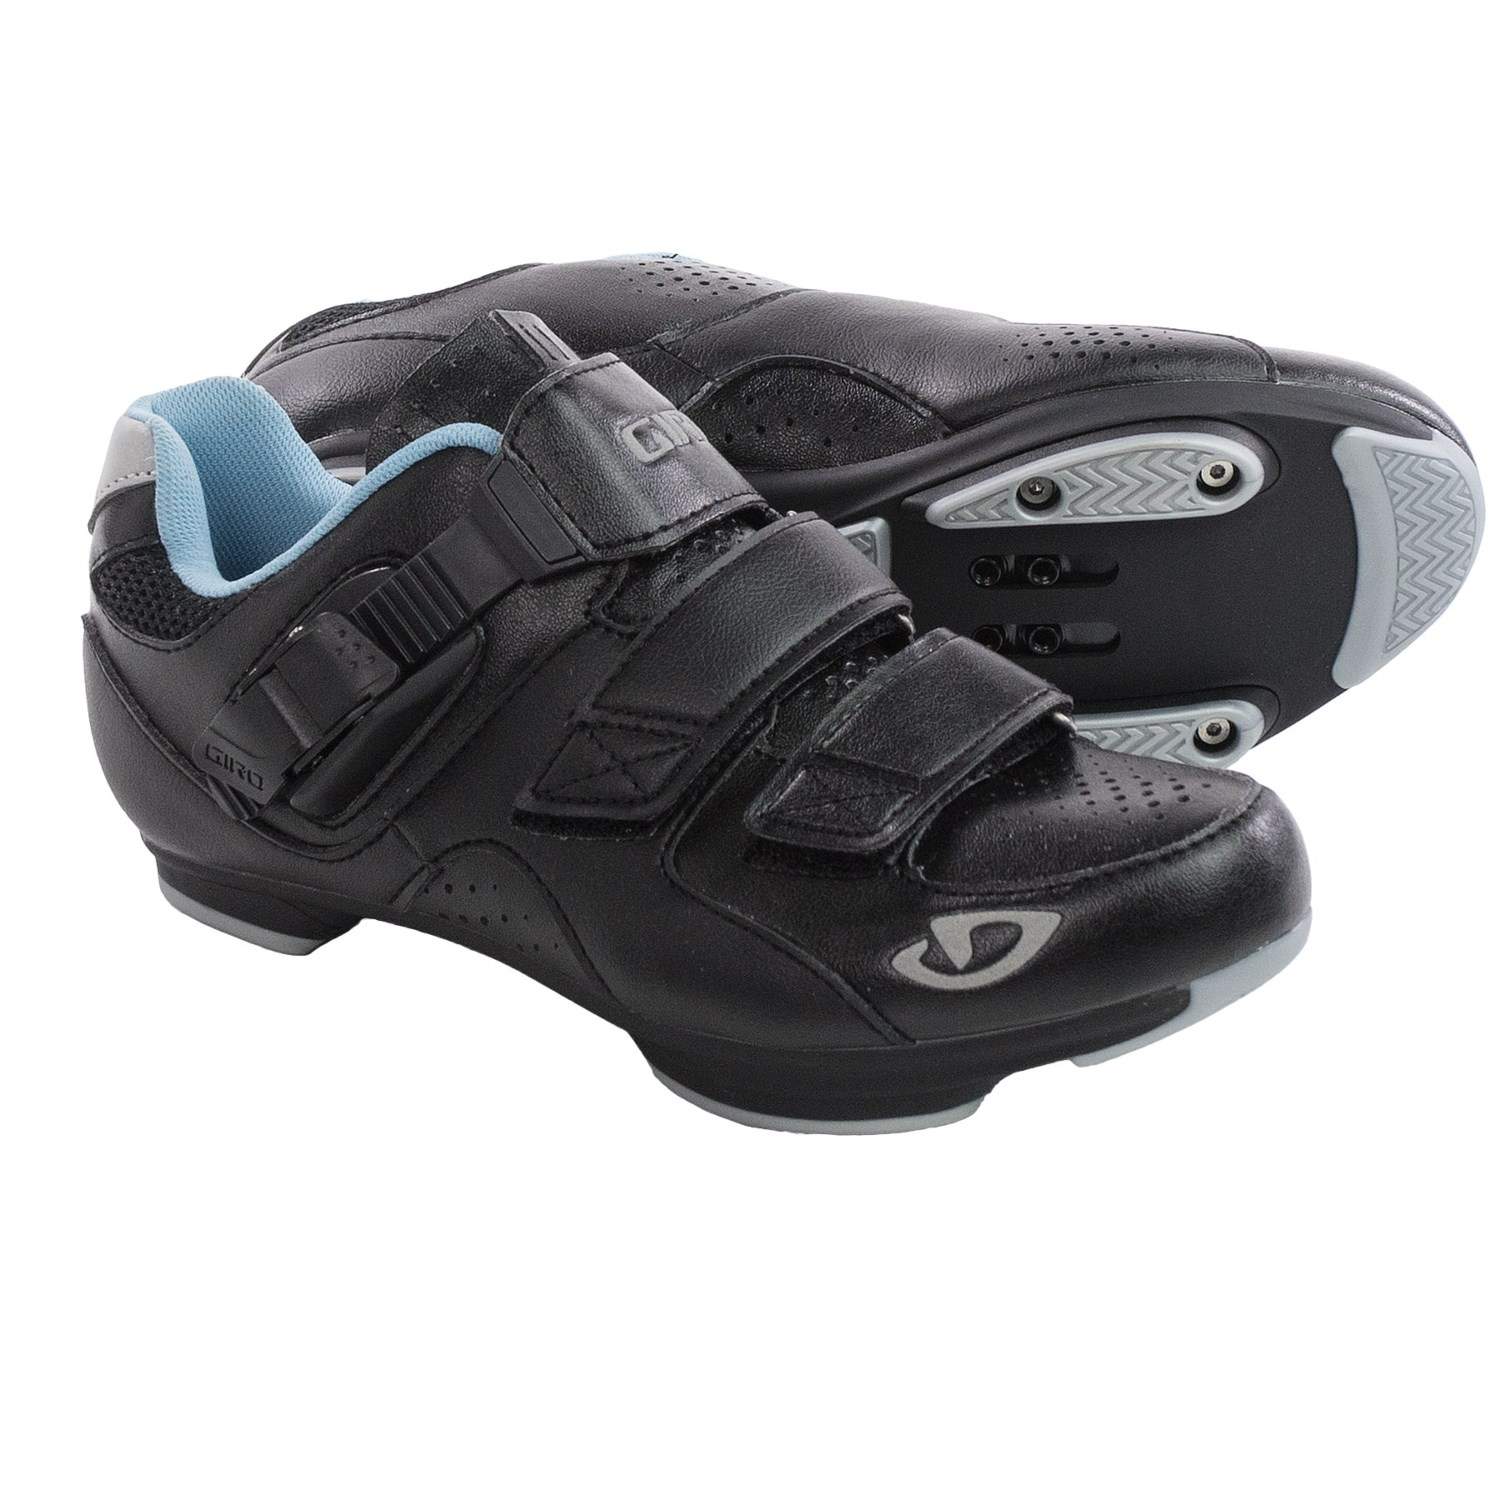 Spd Road Touring Bike Shoes Women